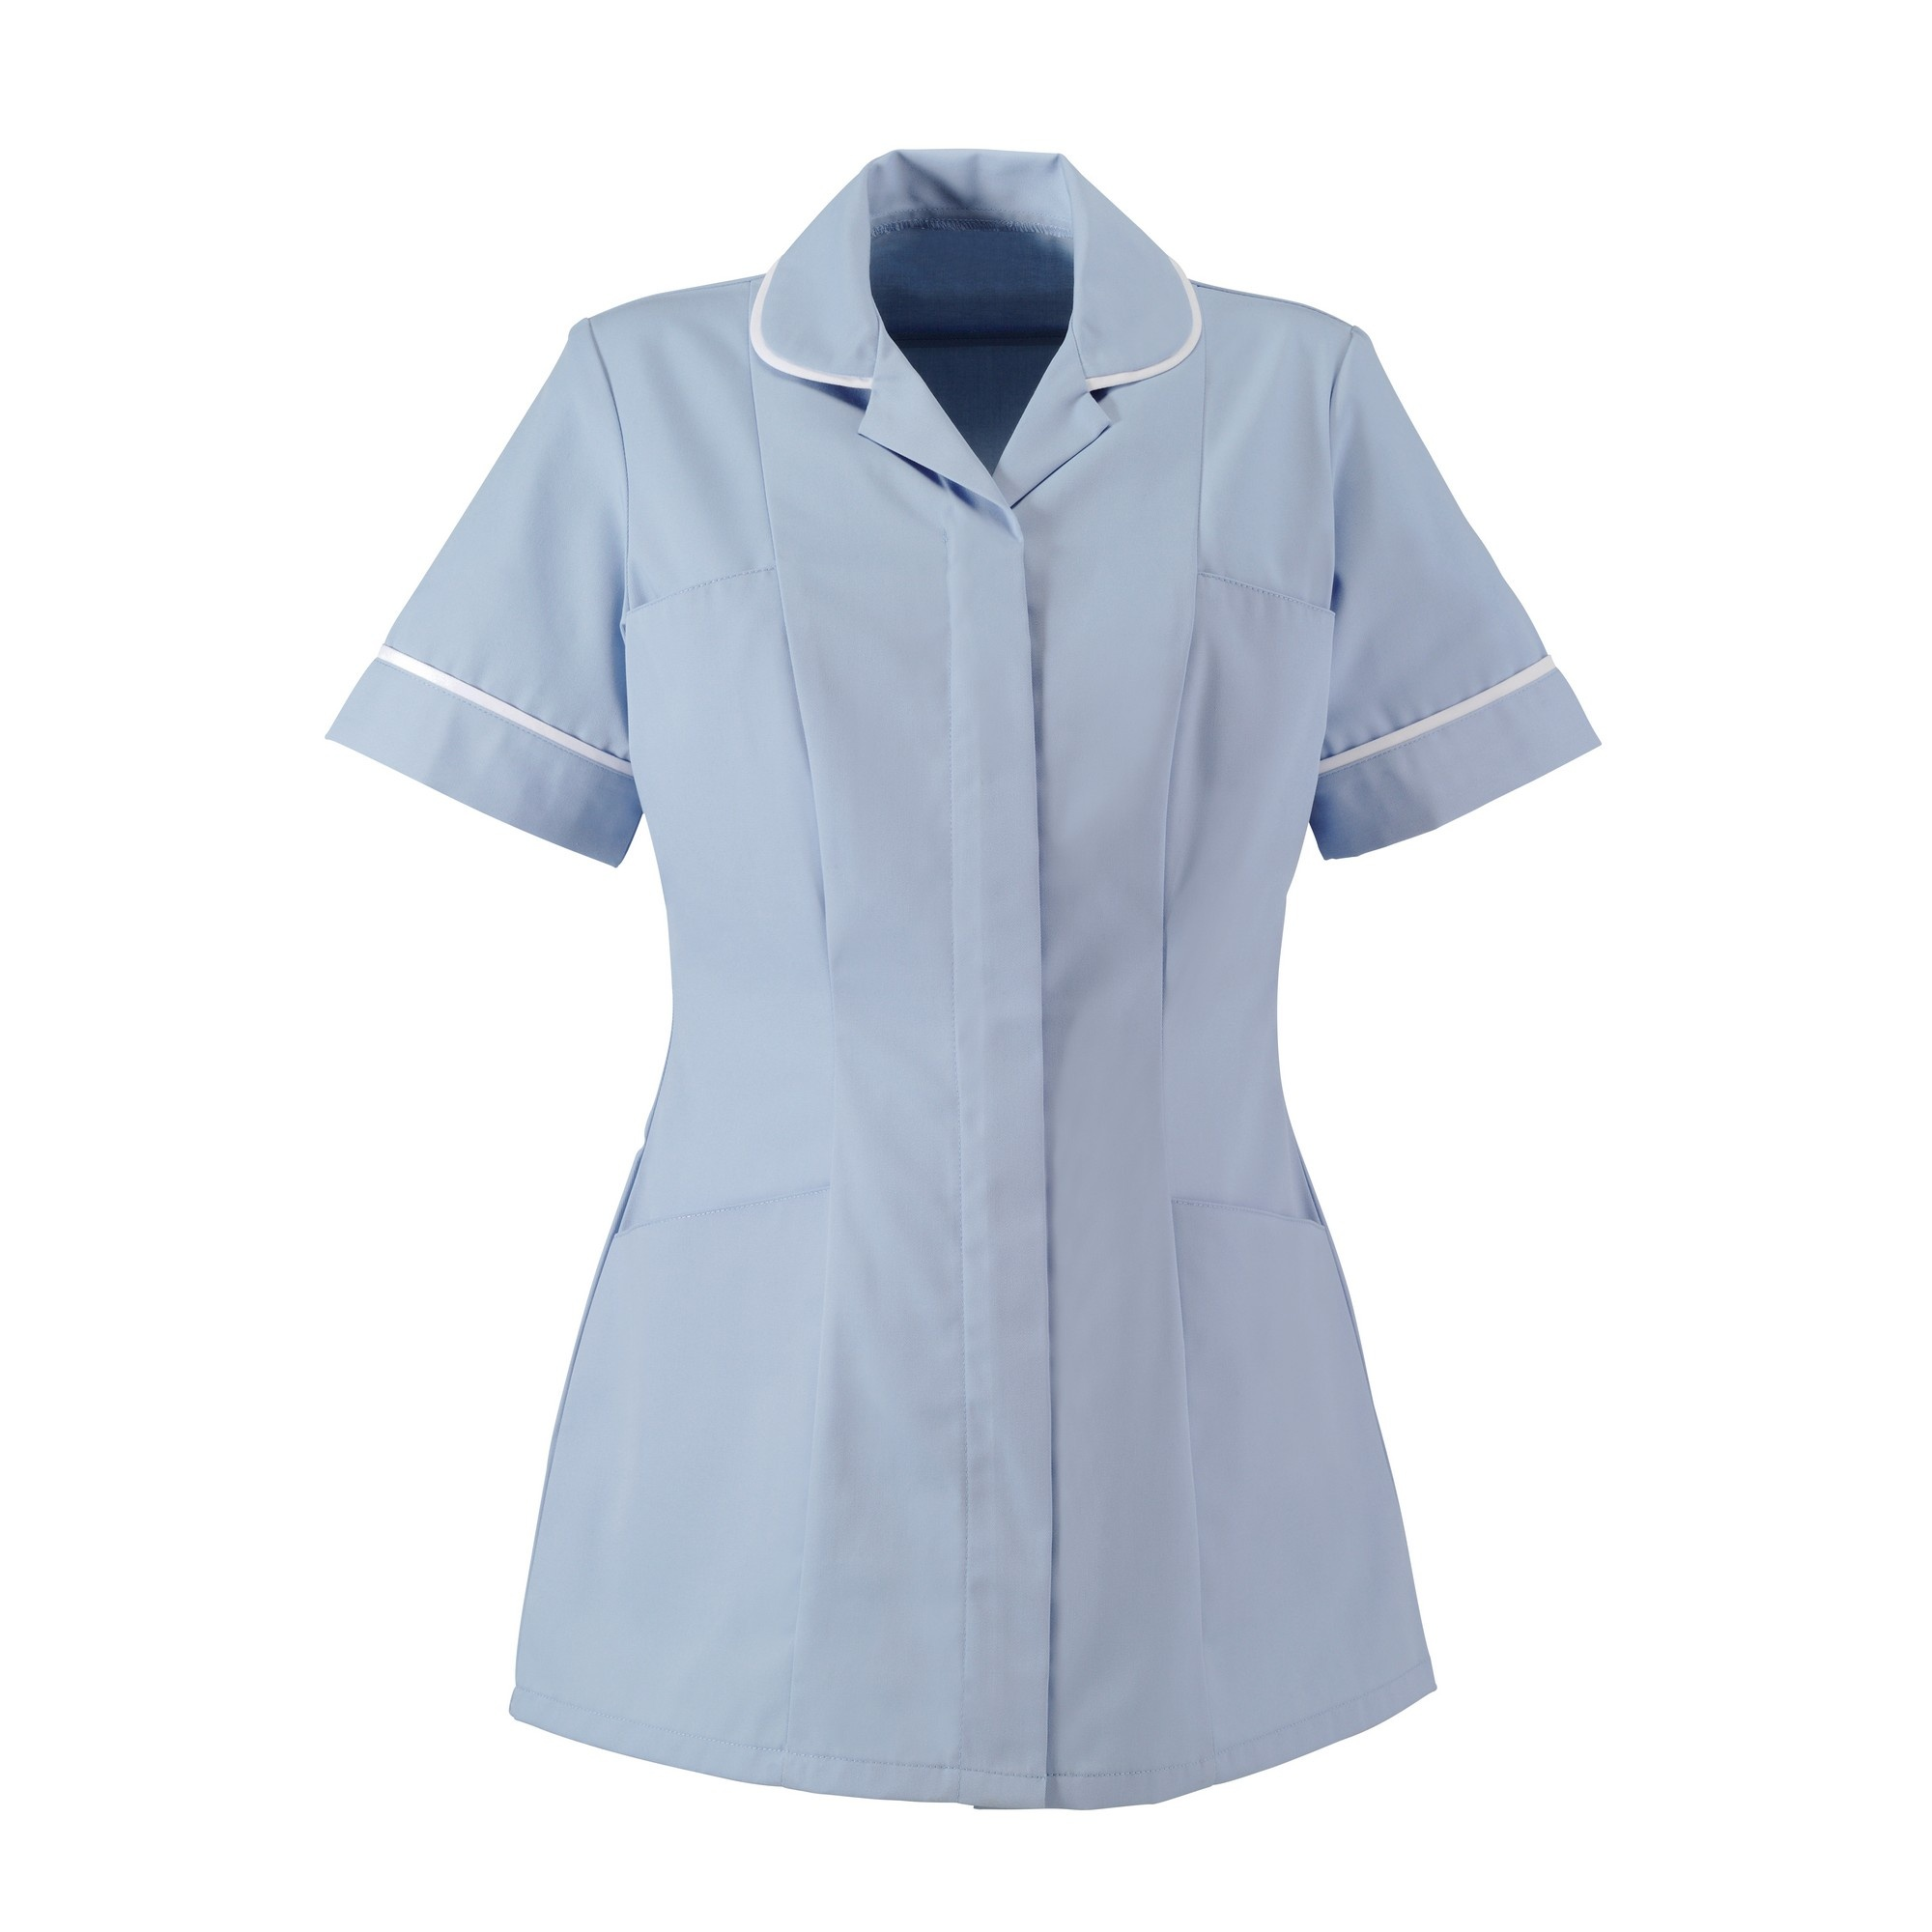 Alexandra Womens/Ladies Two Tone Classic Cut Medical/Healthcare Tunic (Pack of 2) (14) (Pale Blue/White)